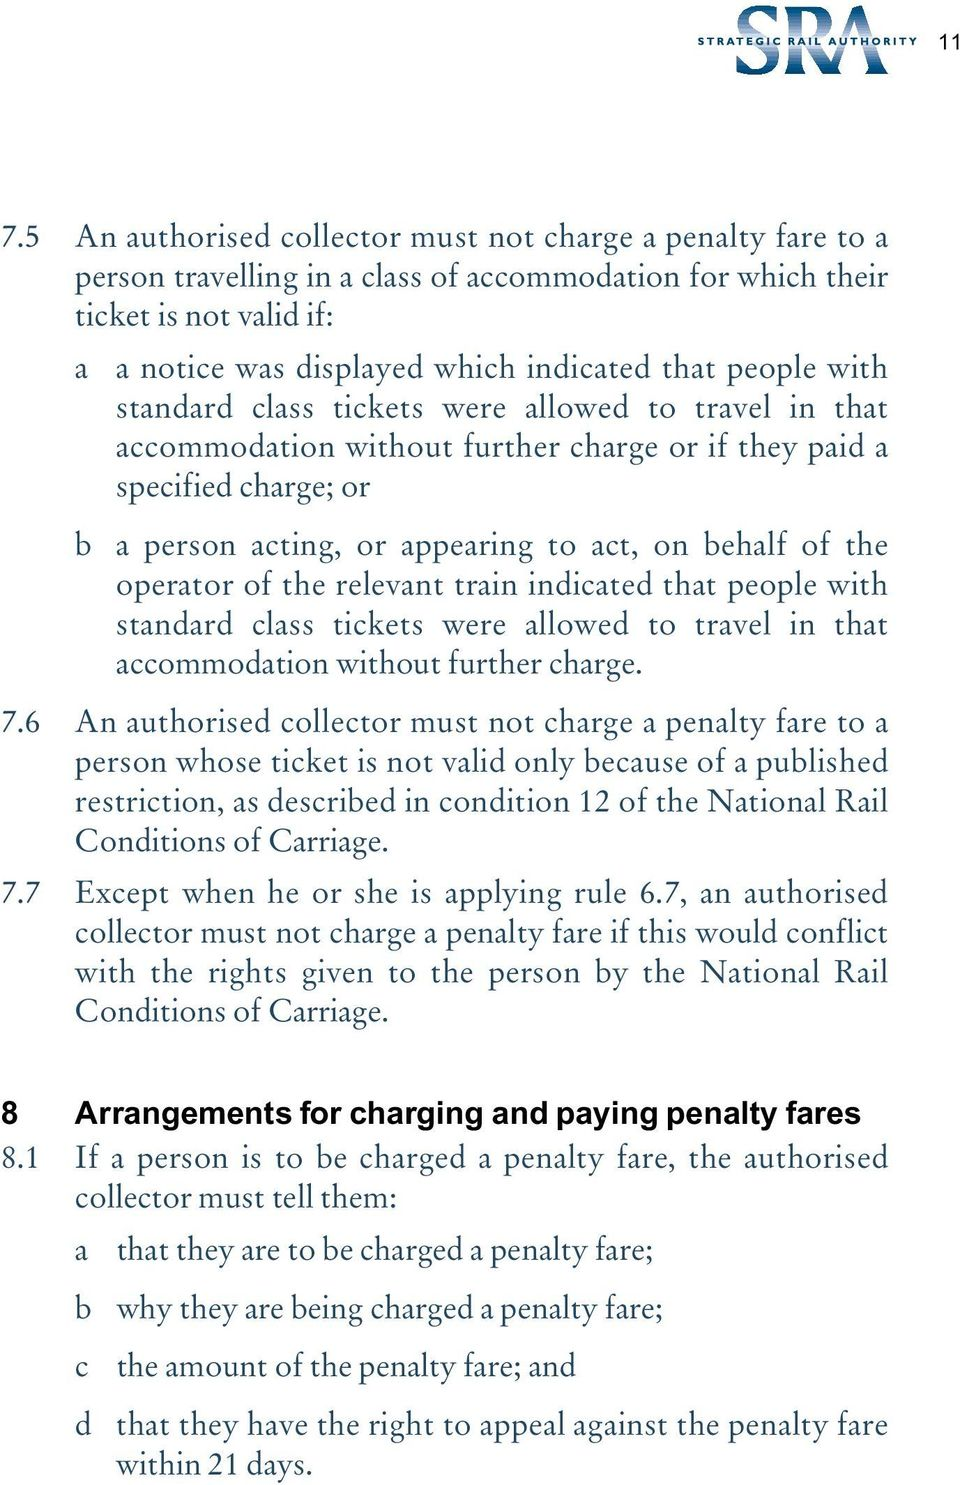 operator of the relevant train indicated that people with standard class tickets were allowed to travel in that accommodation without further charge. 7.